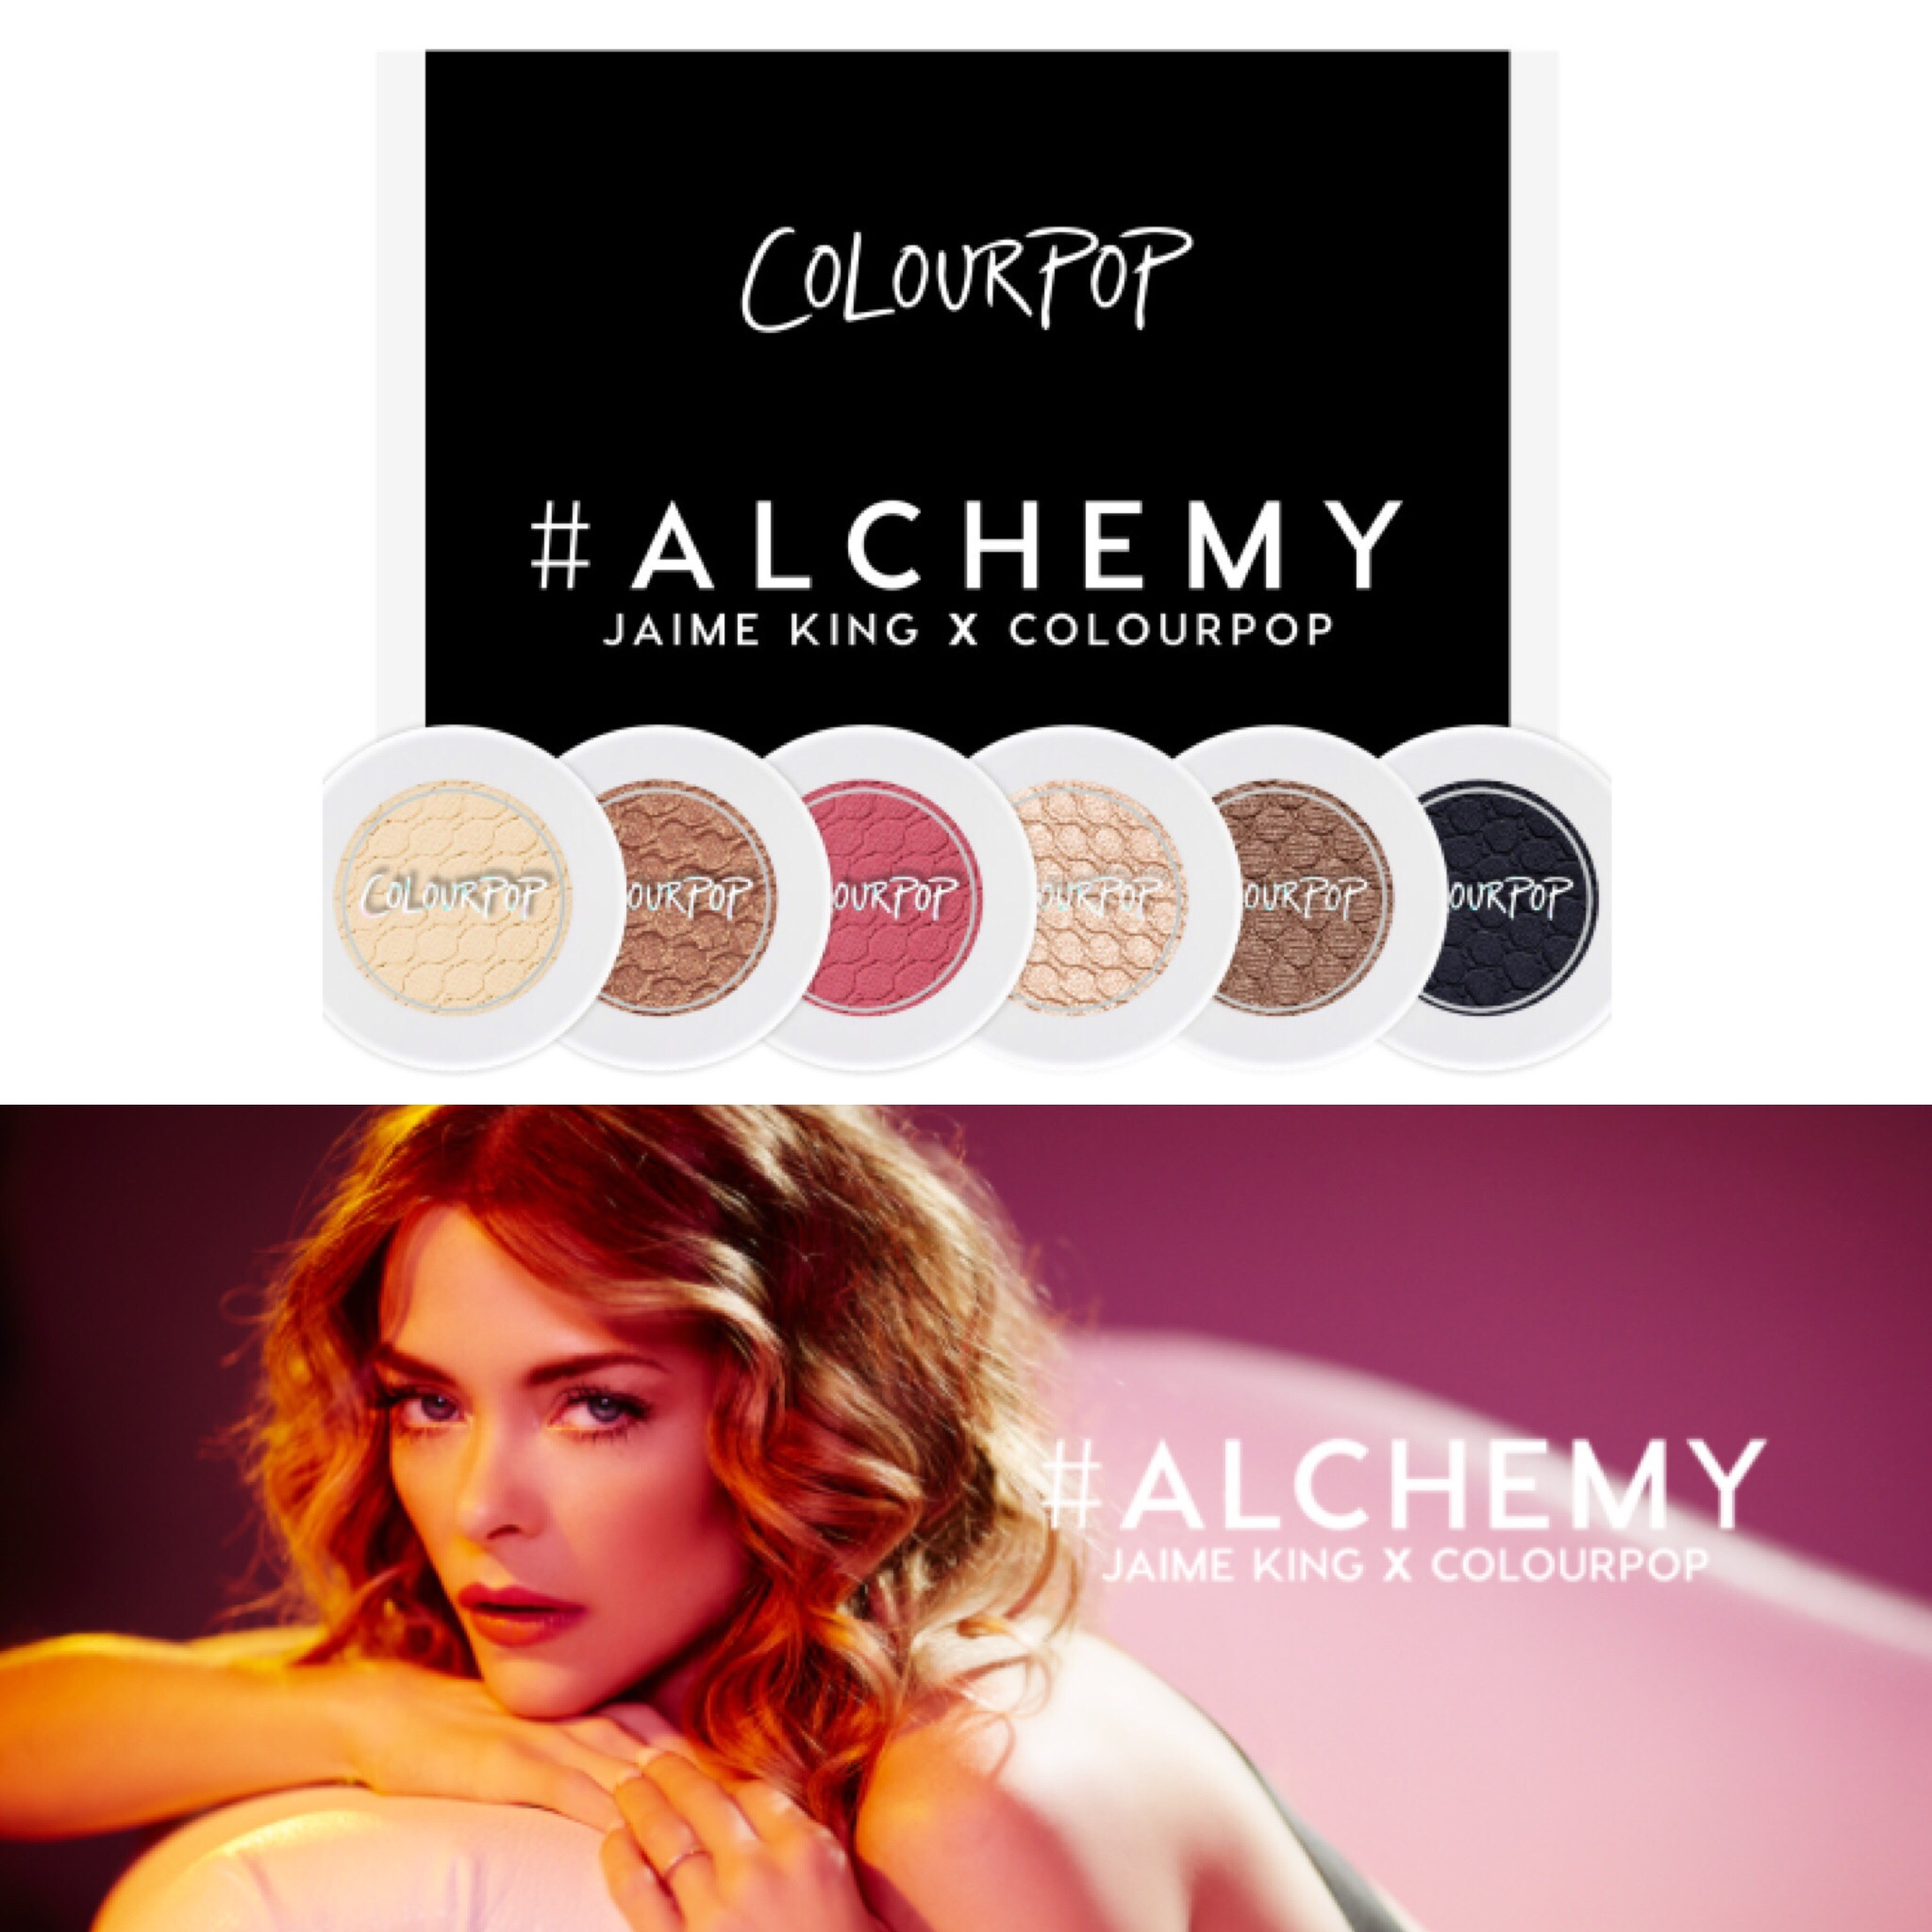 Alchemy Jamie King colourpop